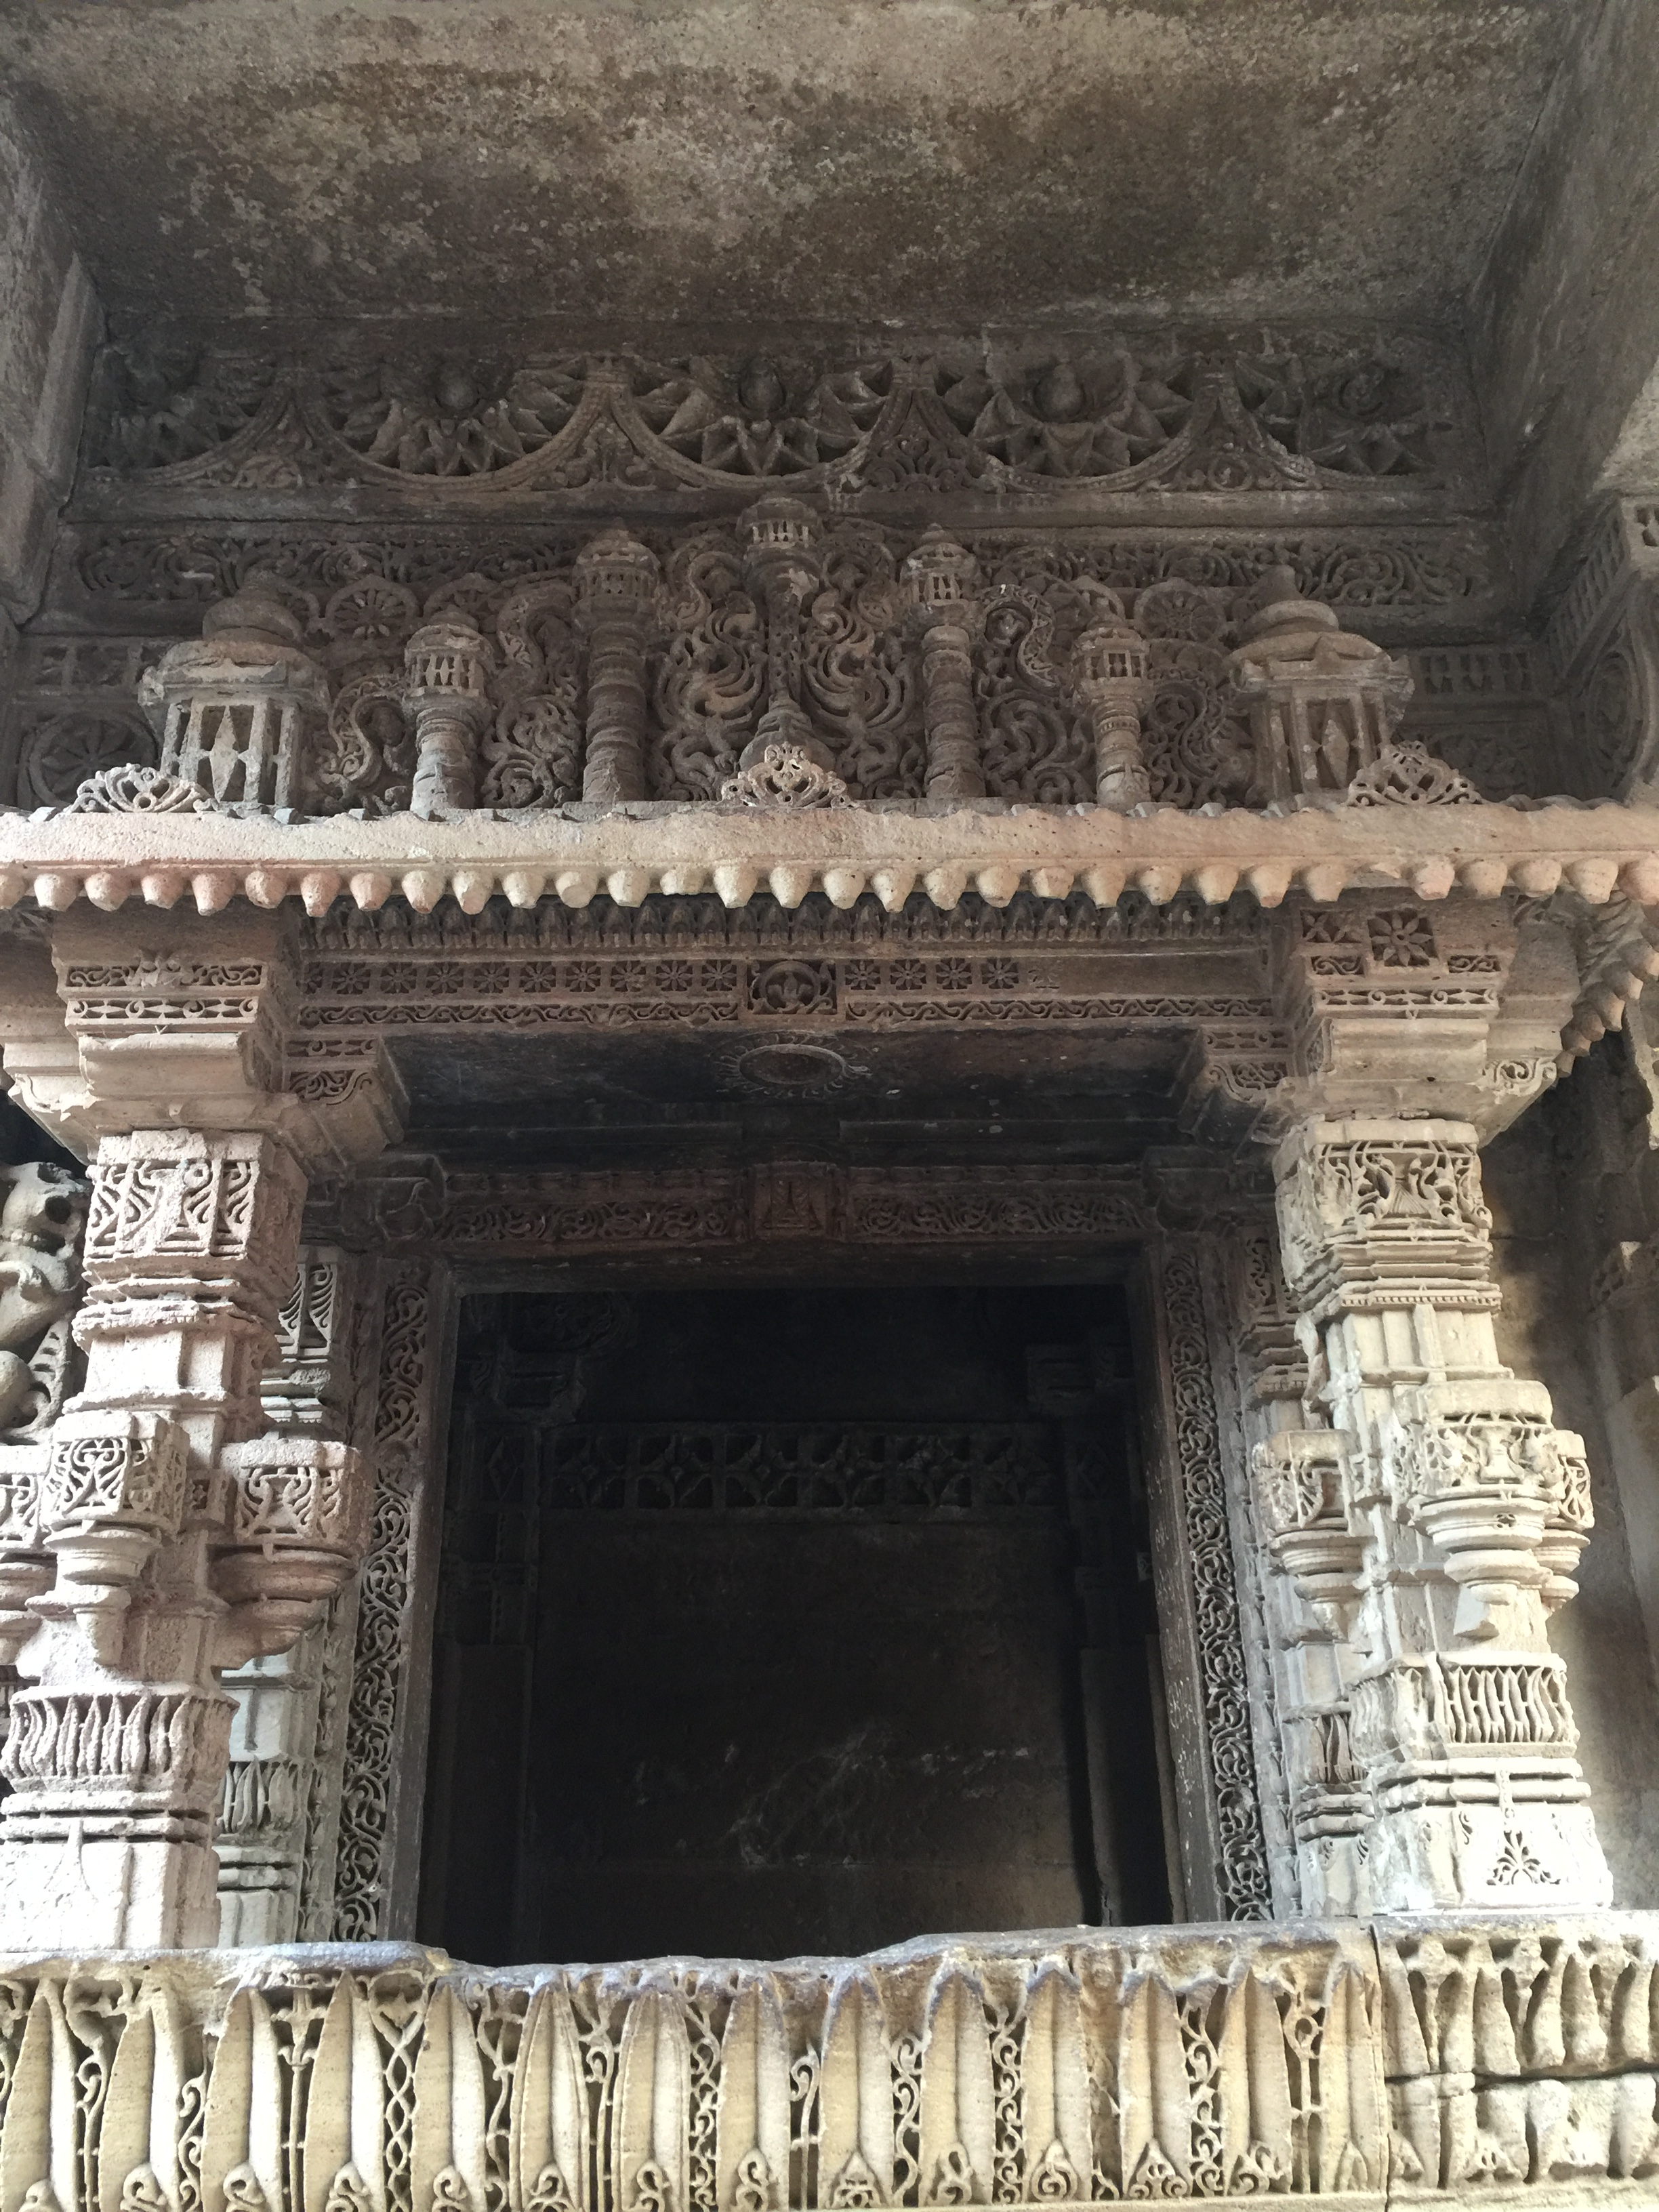 adalaj - intricately designed room